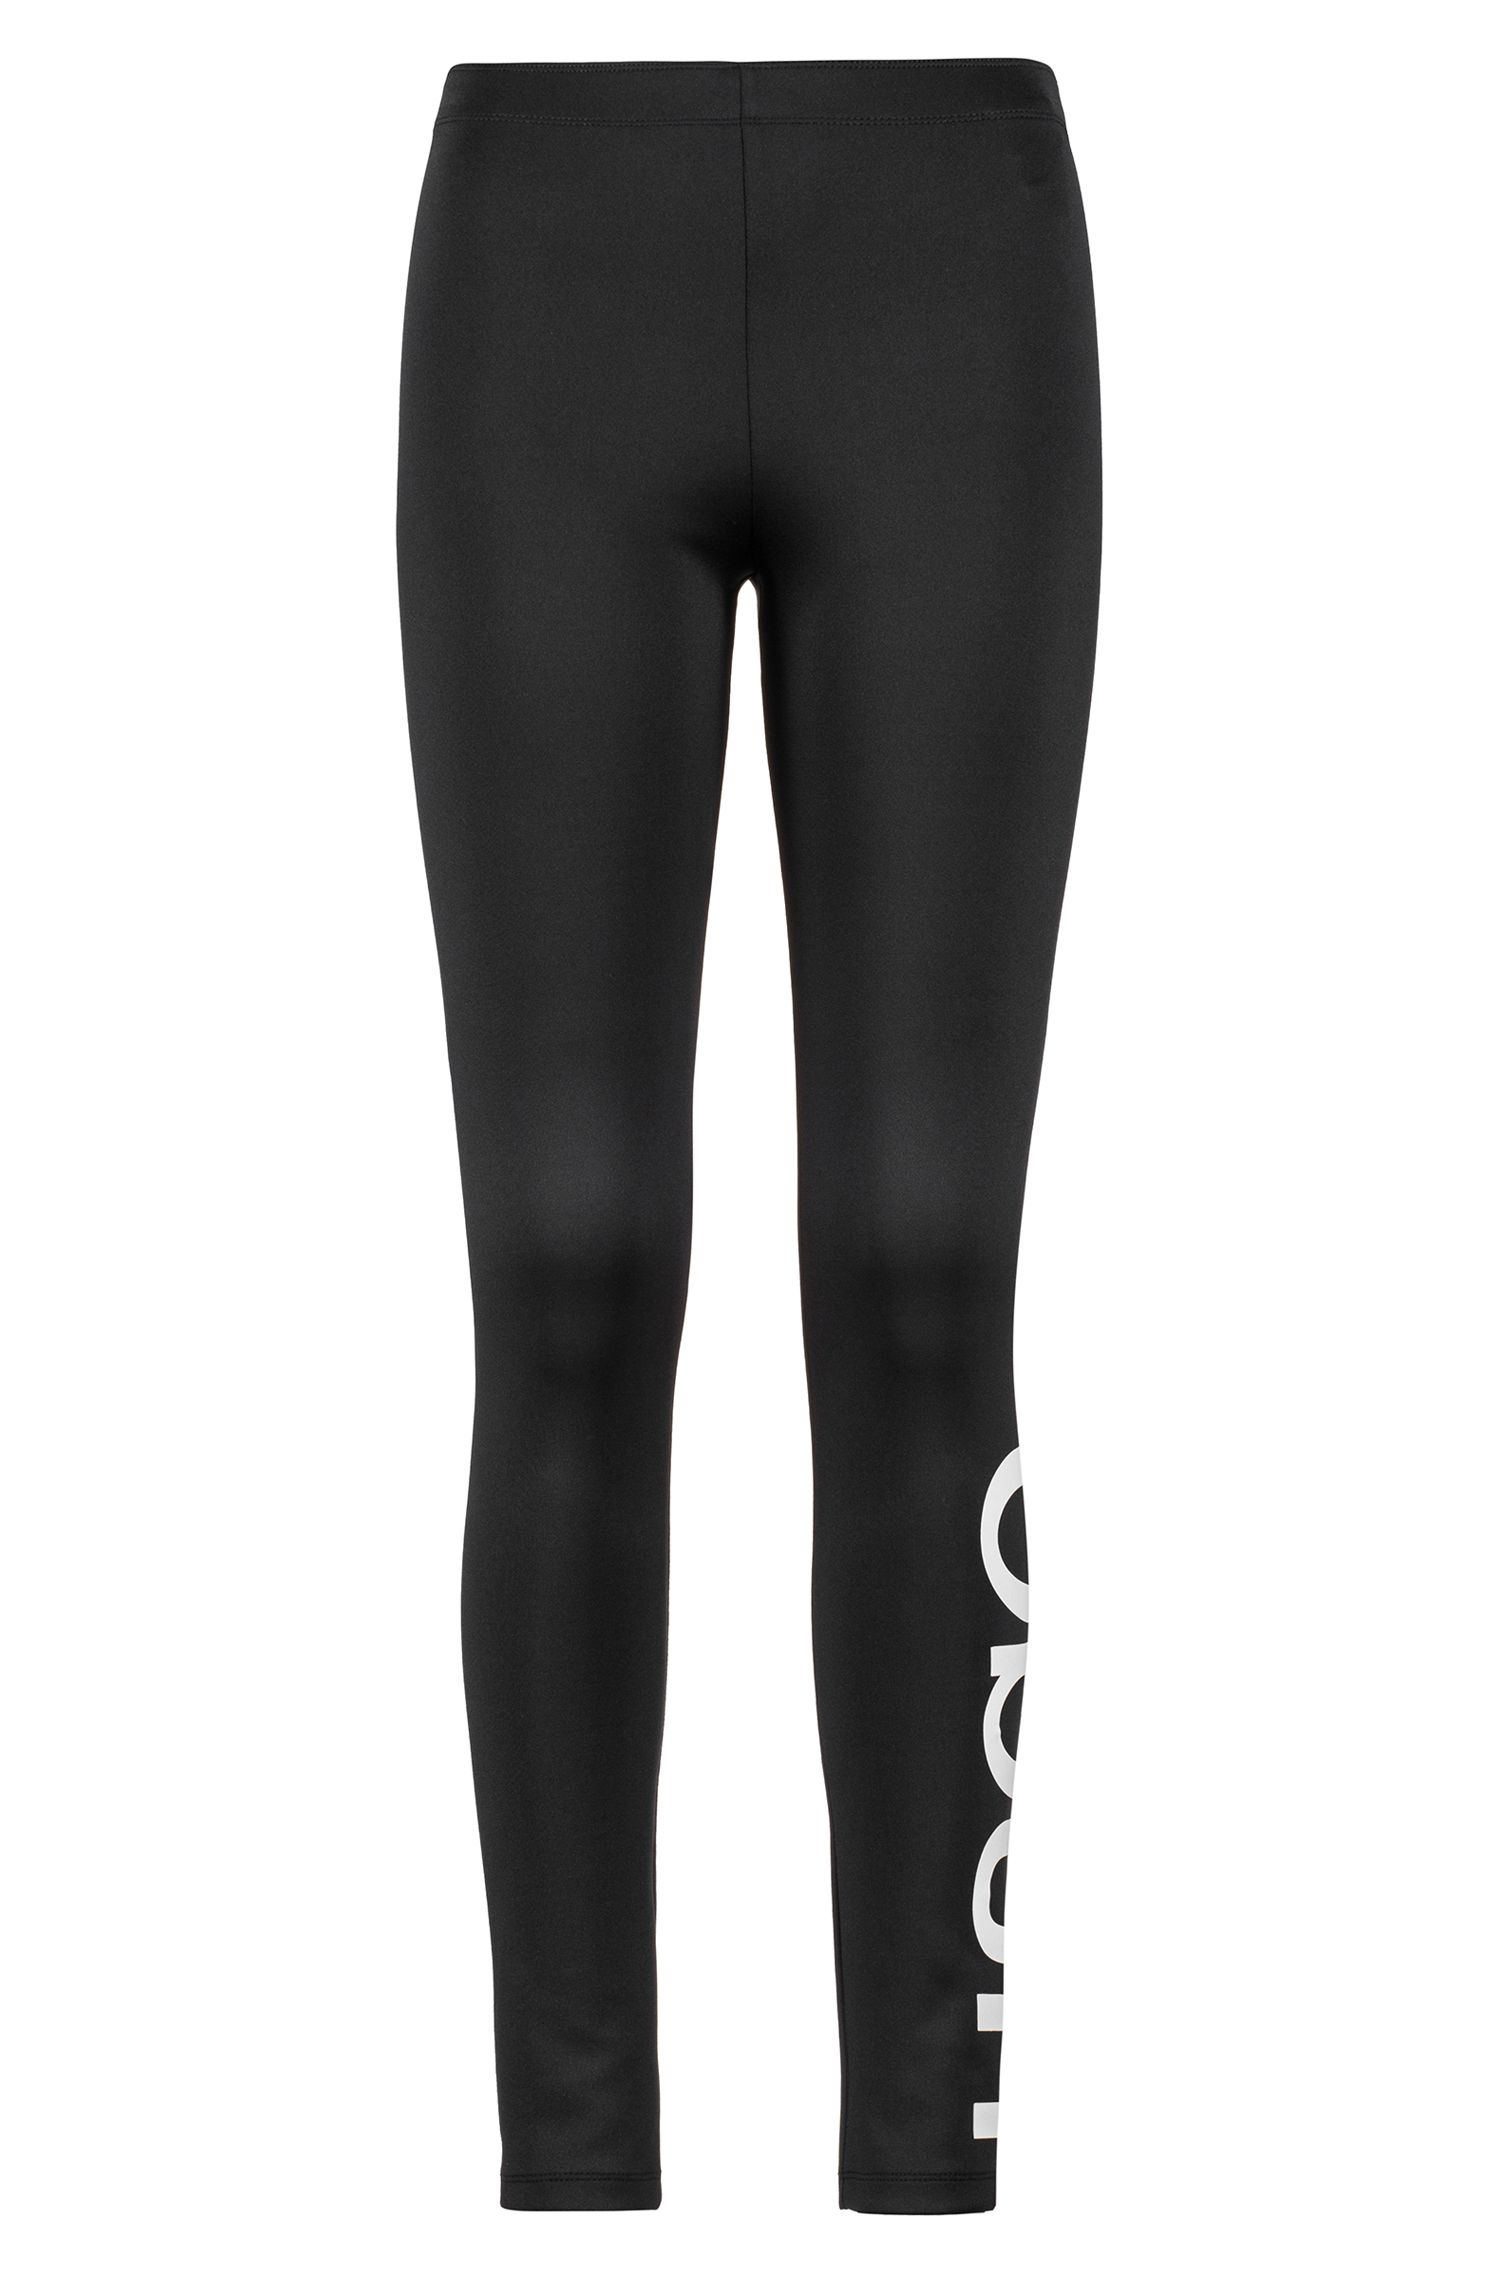 Extra-slim-fit logo trousers in technical stretch fabric, Black